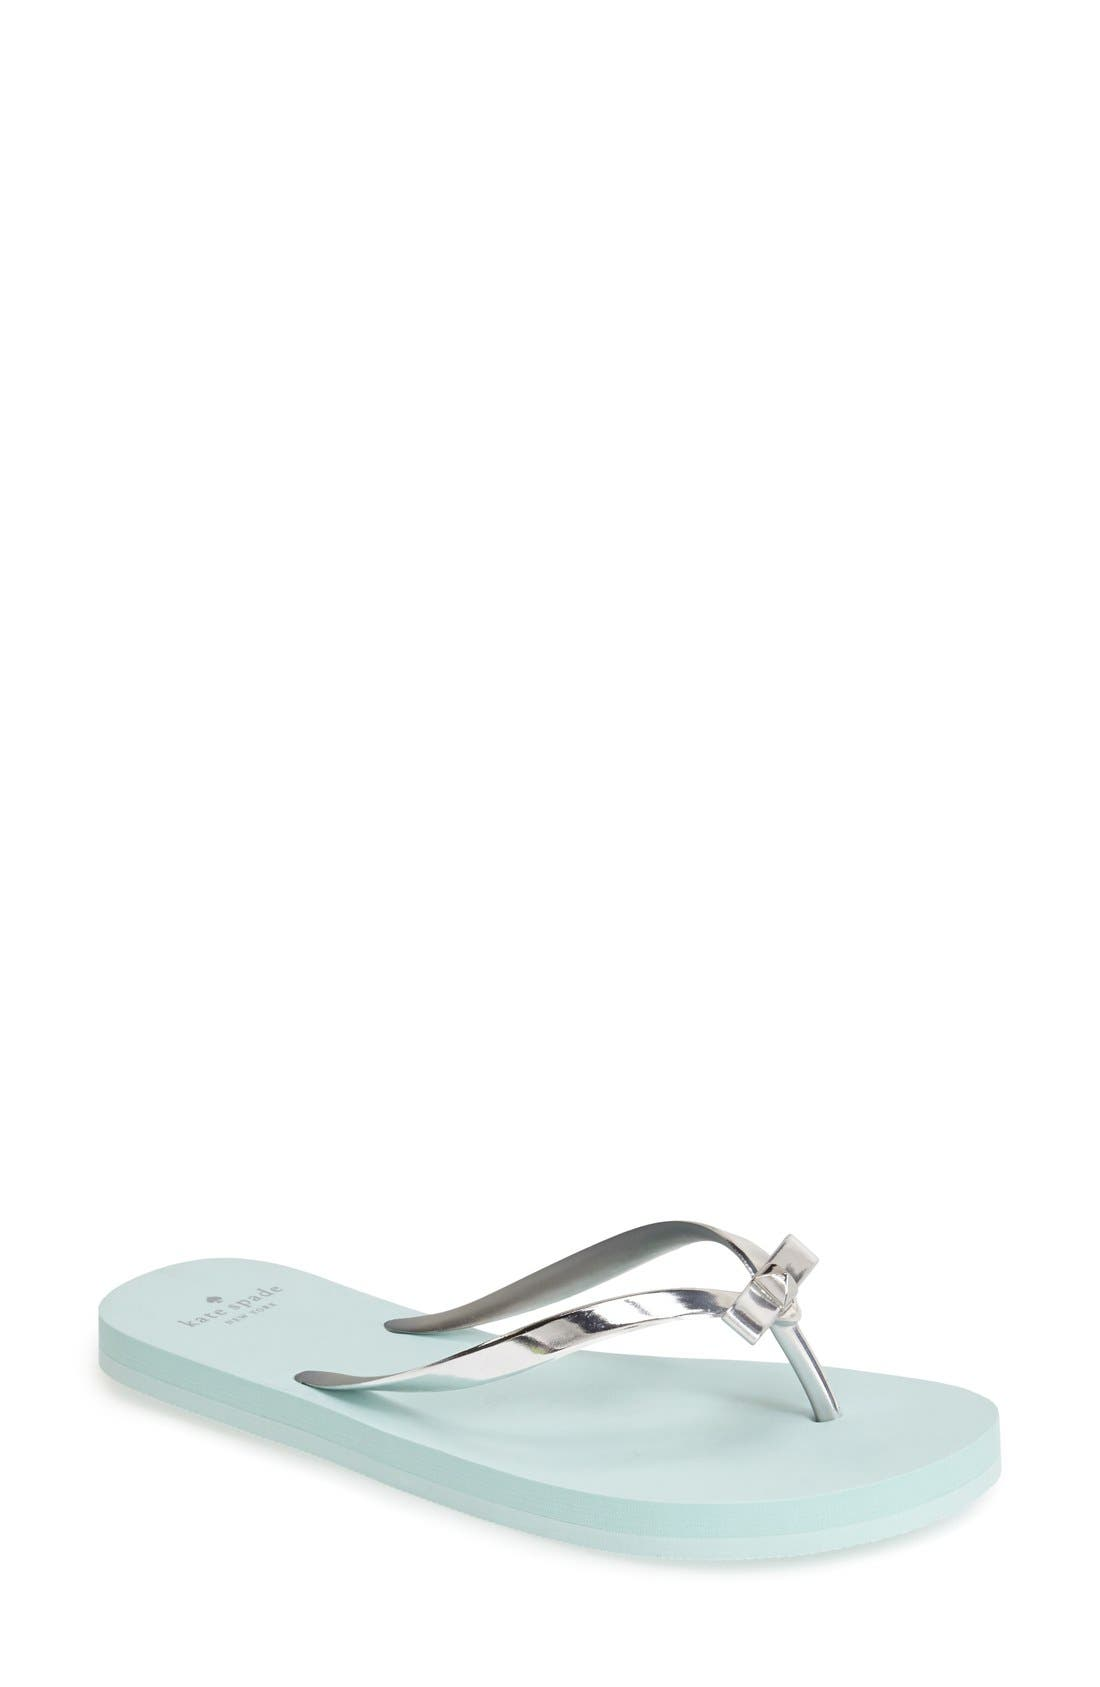 KATE SPADE NEW YORK happily flip flop